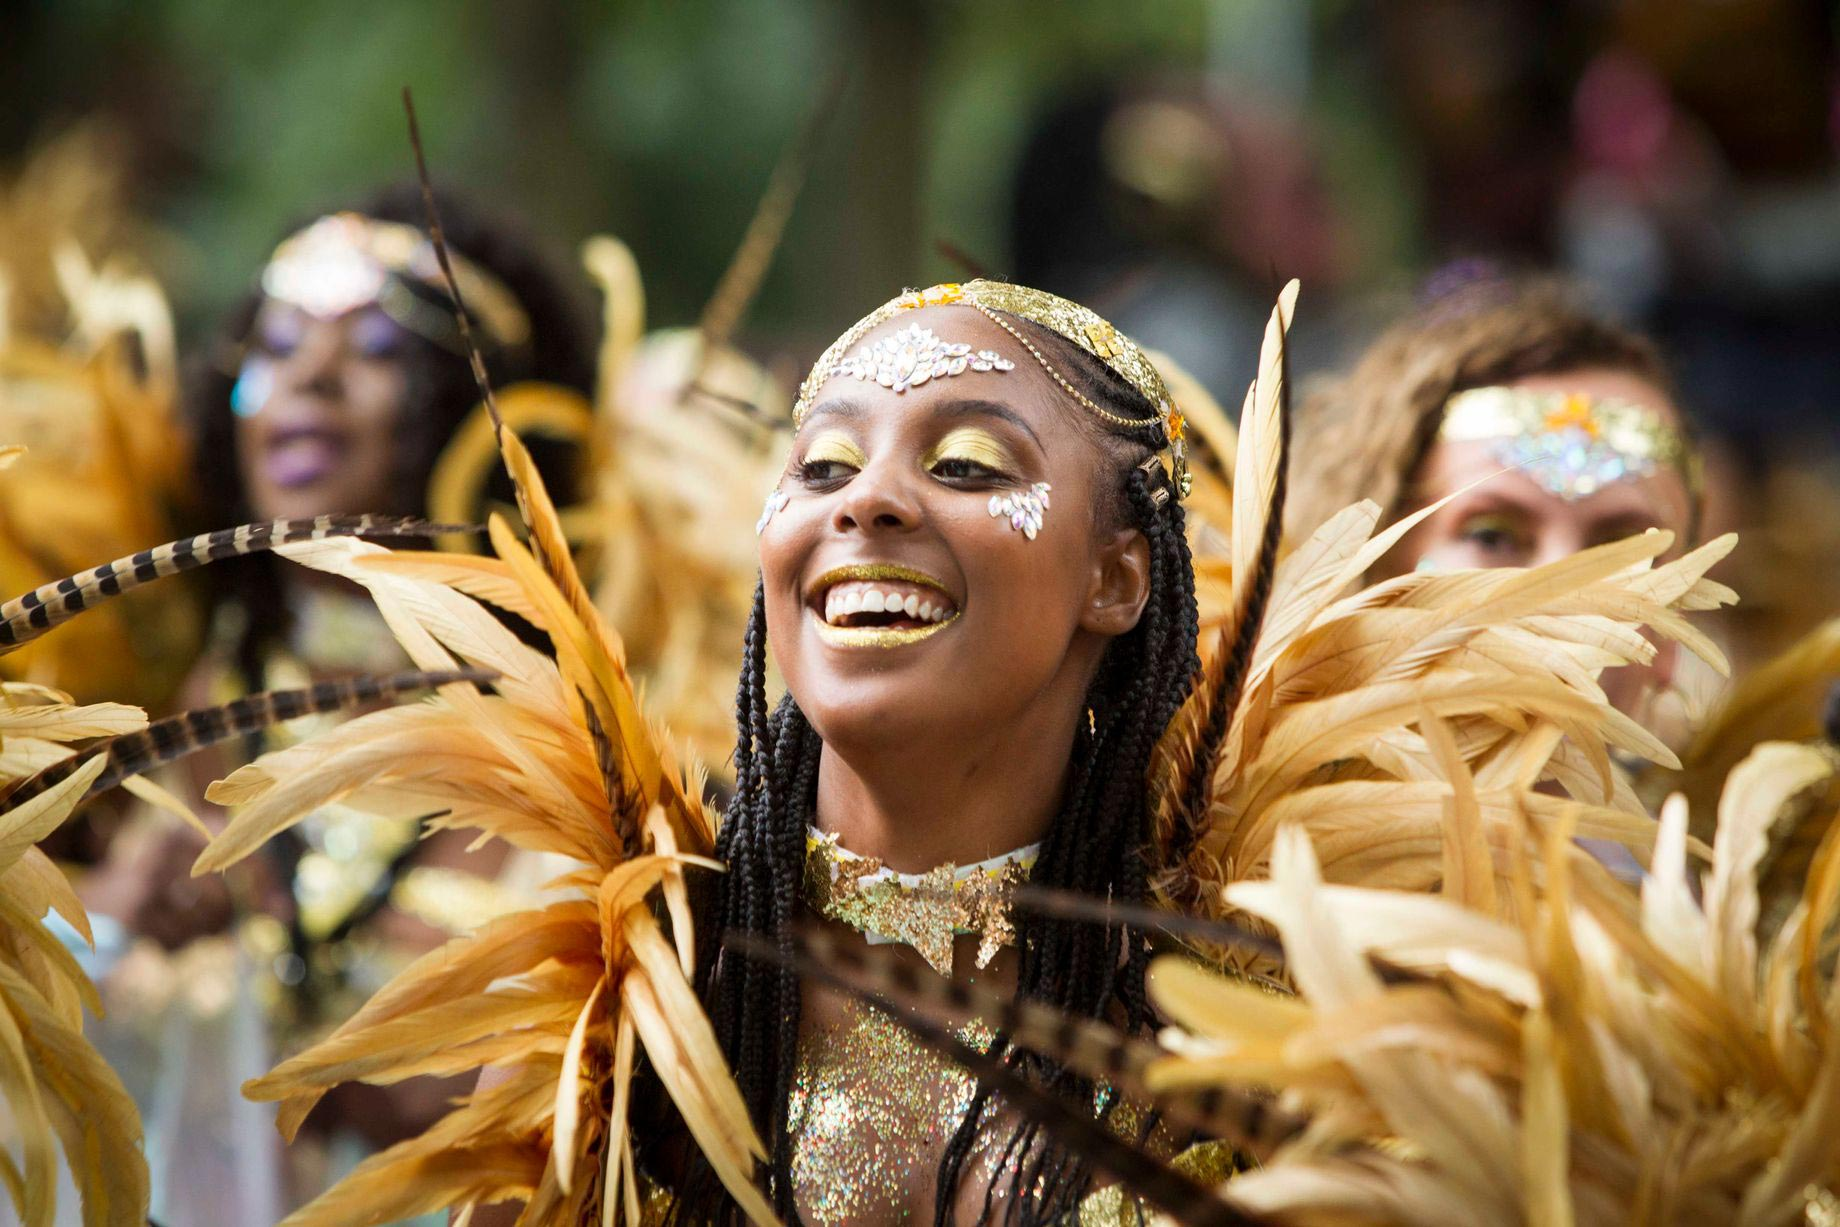 Leeds West Indian Carnival performer (photo by Chris Bull)